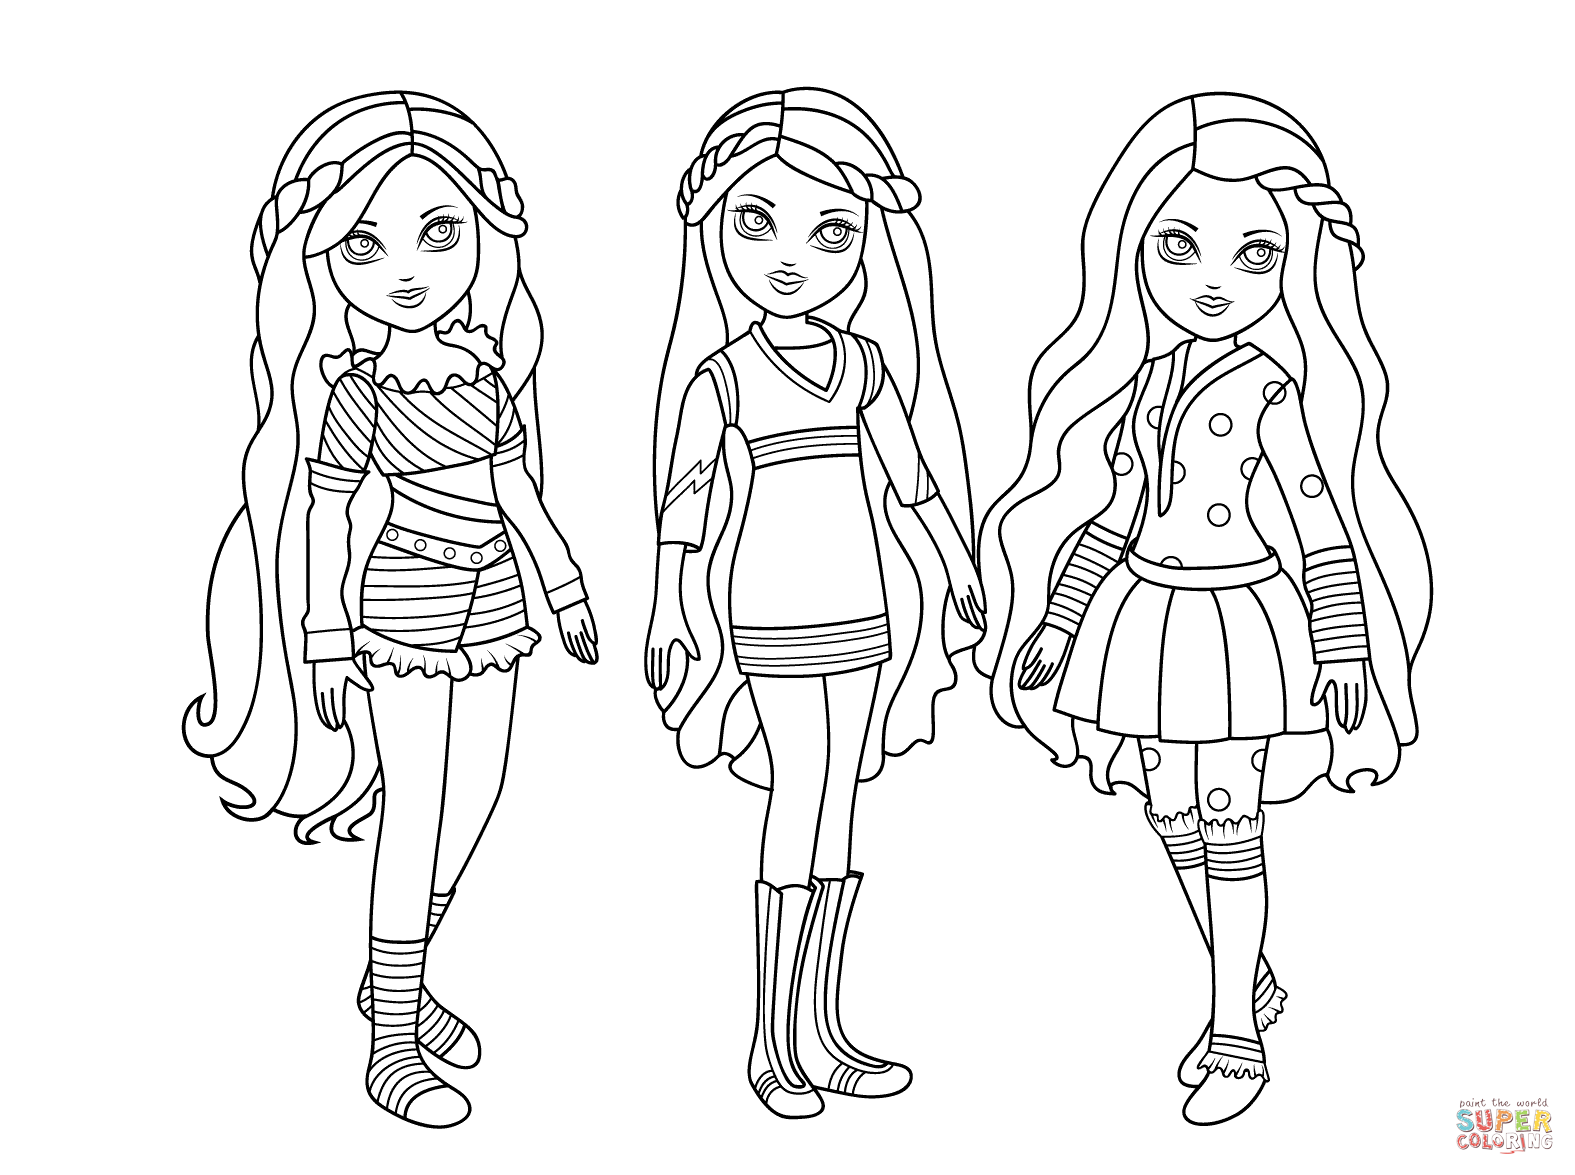 boxy girl coloring pages pin by aidan kelly on radom coloring pages chibi coloring girl boxy pages